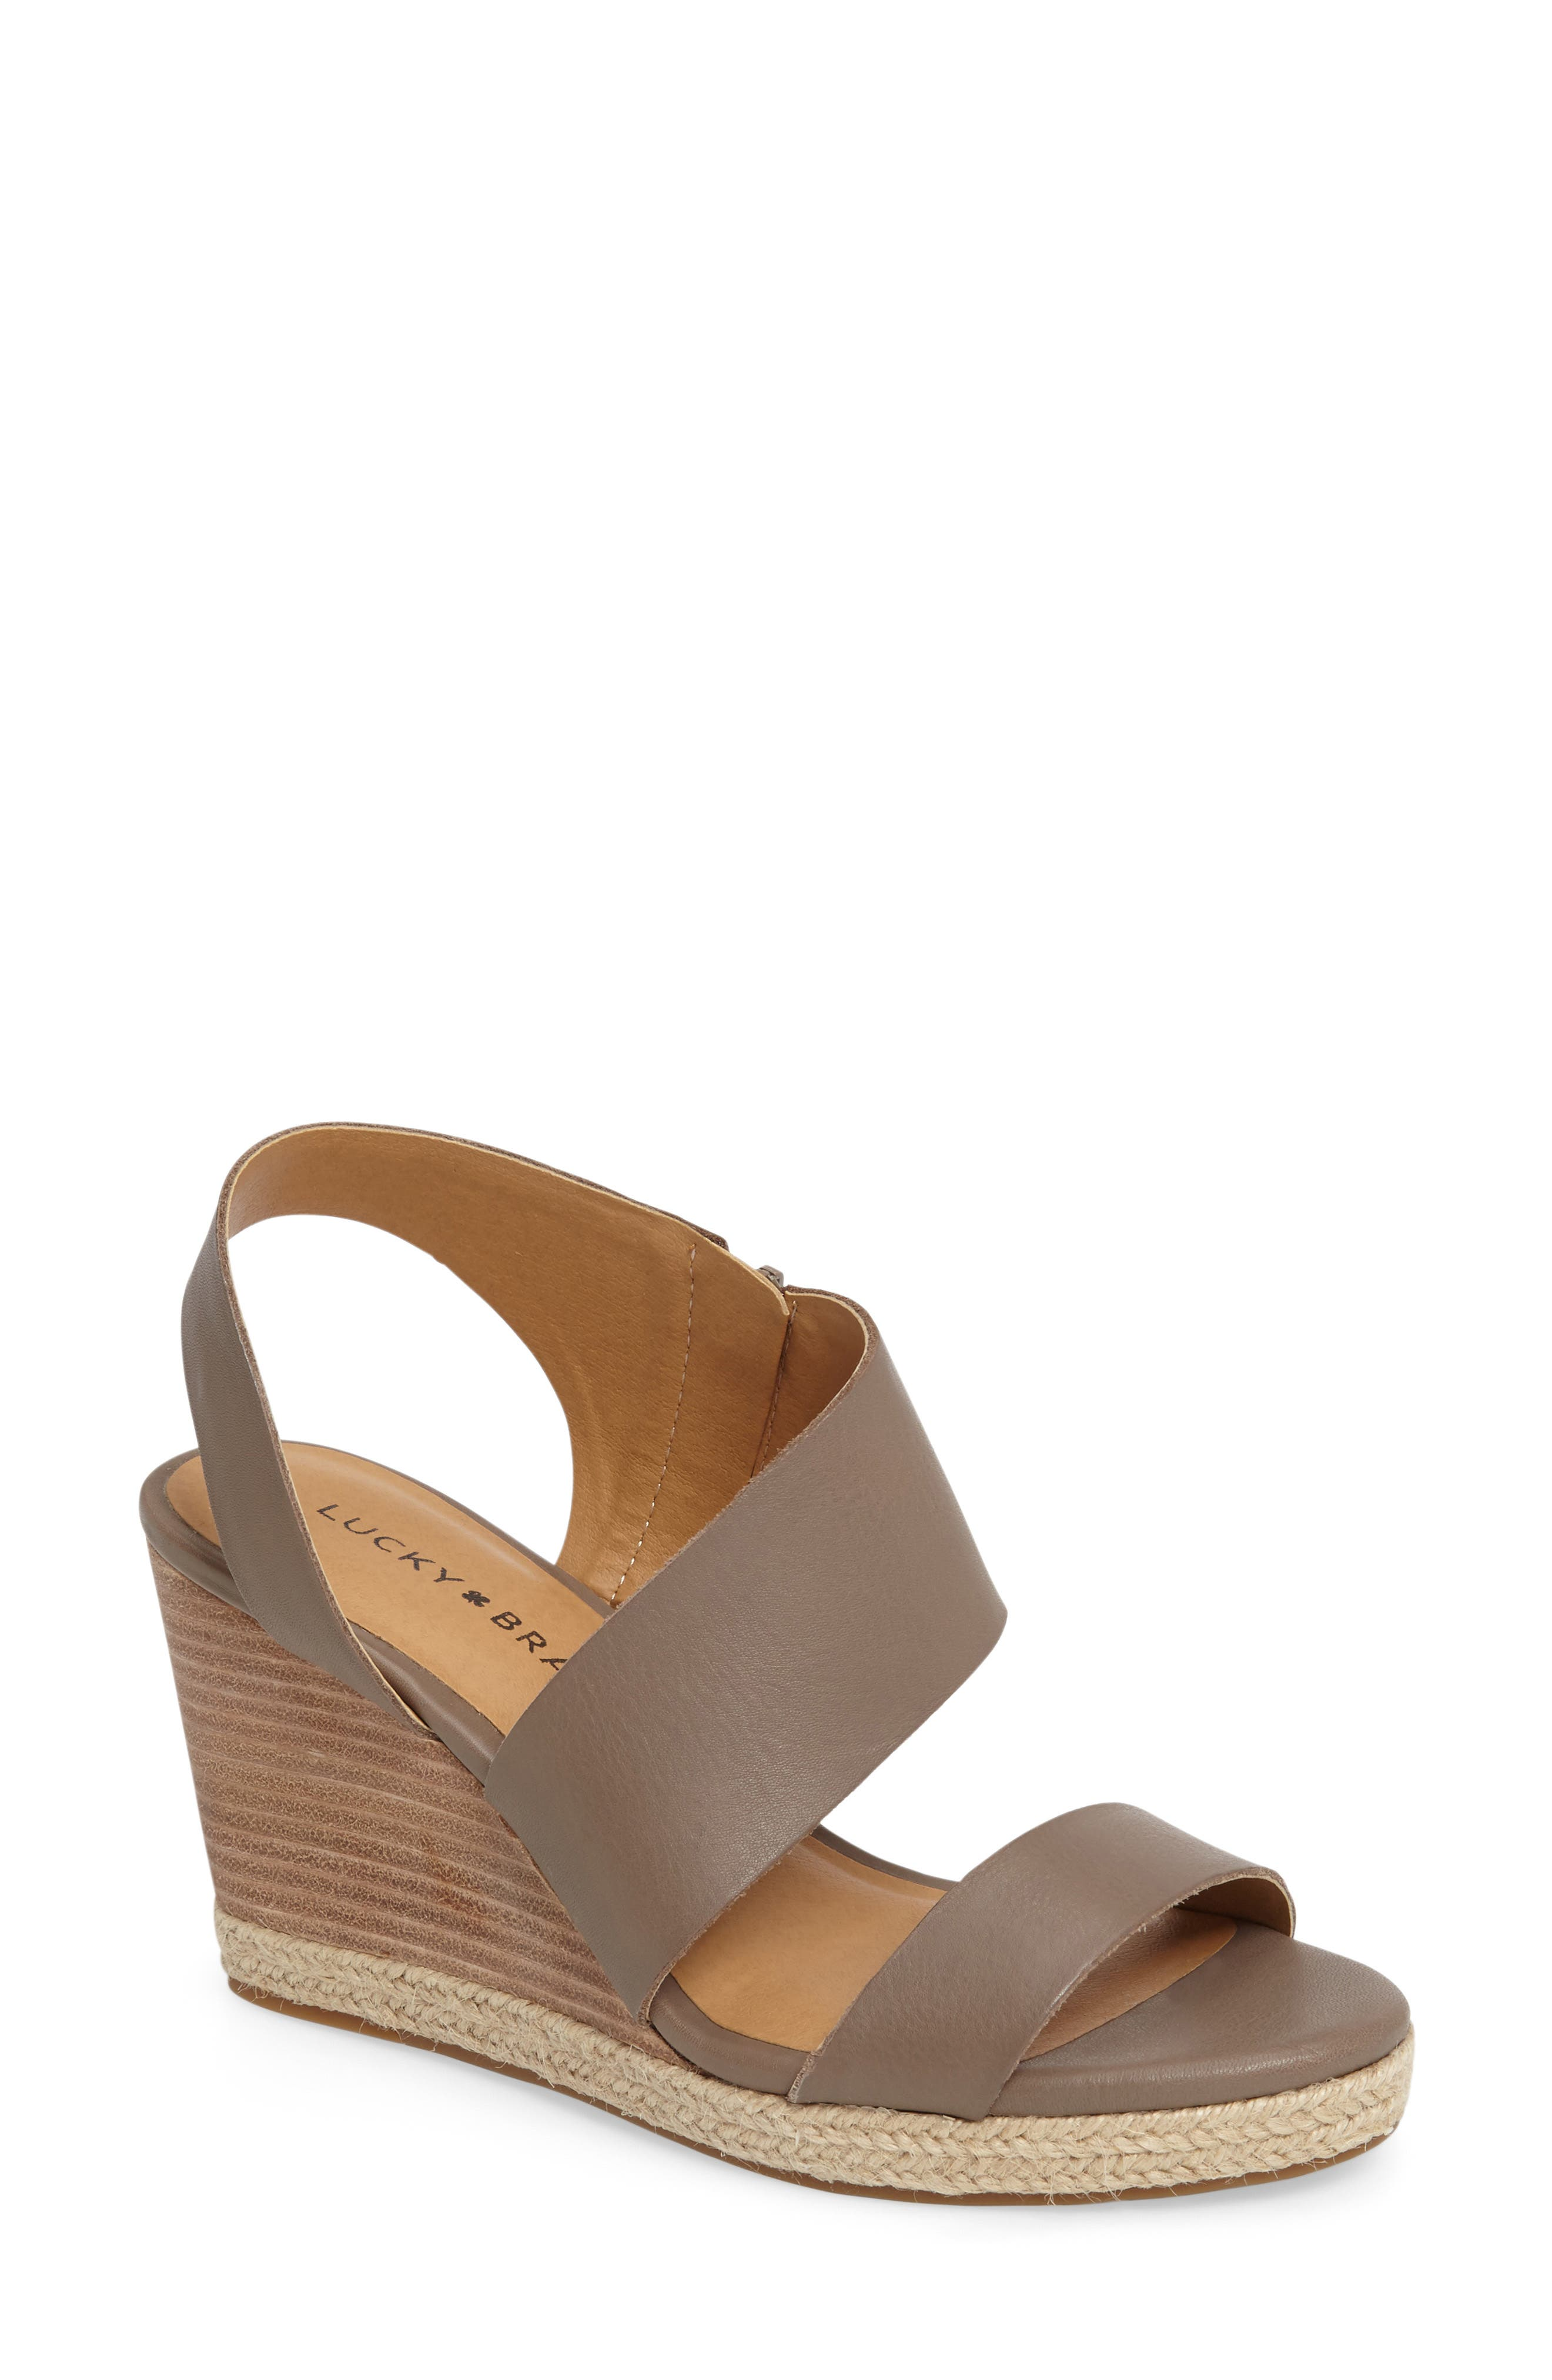 LUCKY BRAND Lowden Wedge Sandal